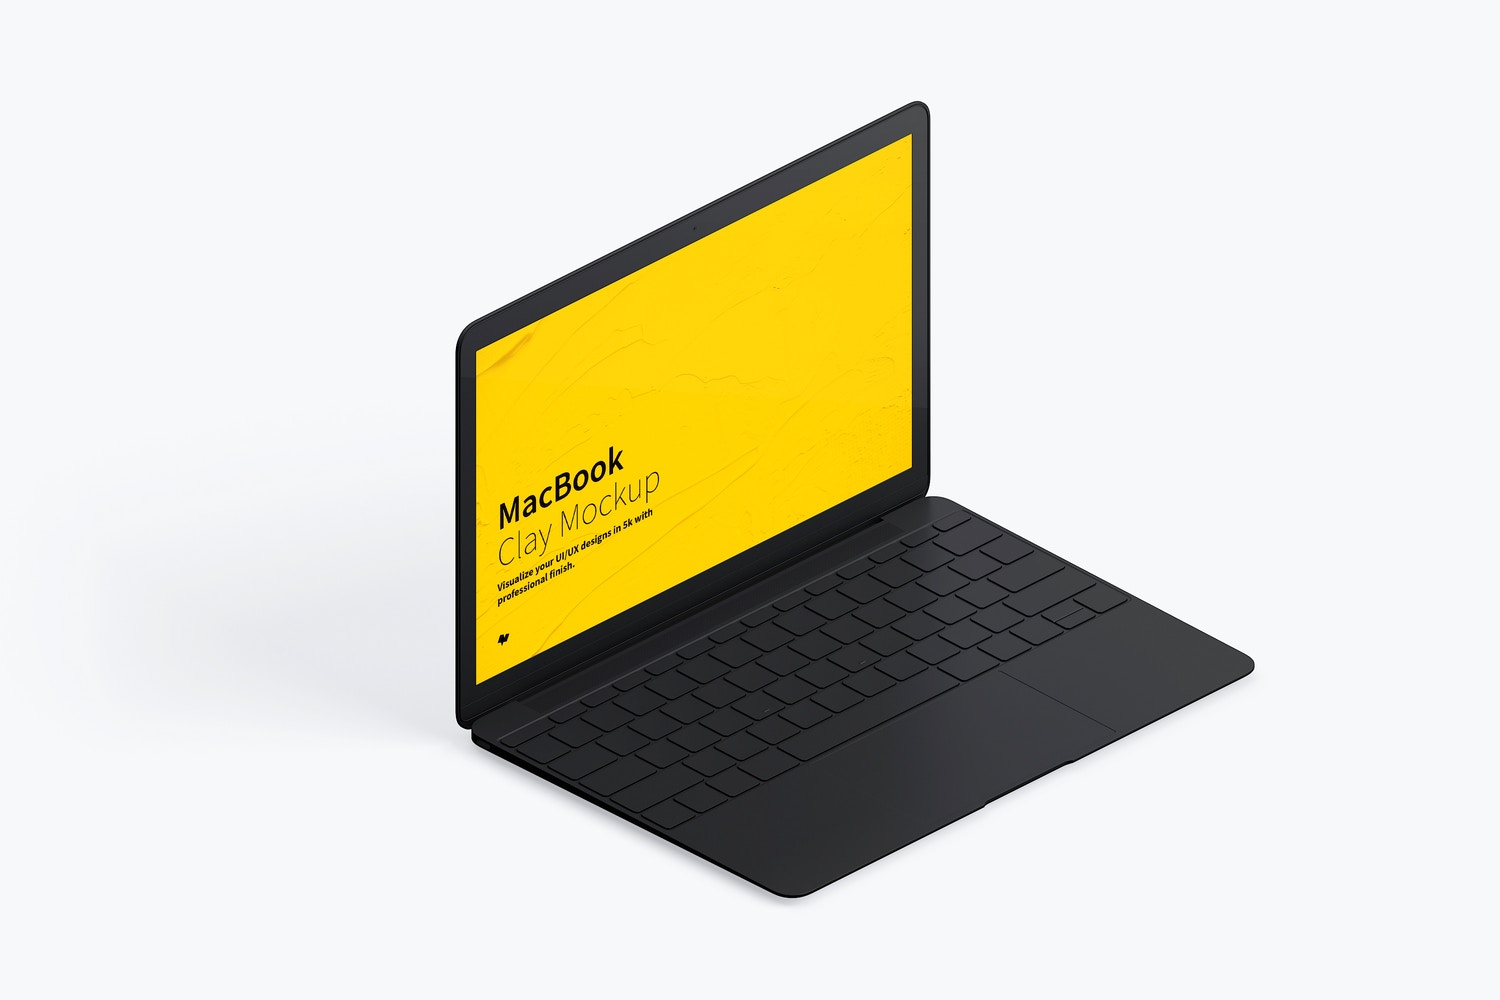 Clay MacBook Mockup, Isometric Left View (4) by Original Mockups on Original Mockups